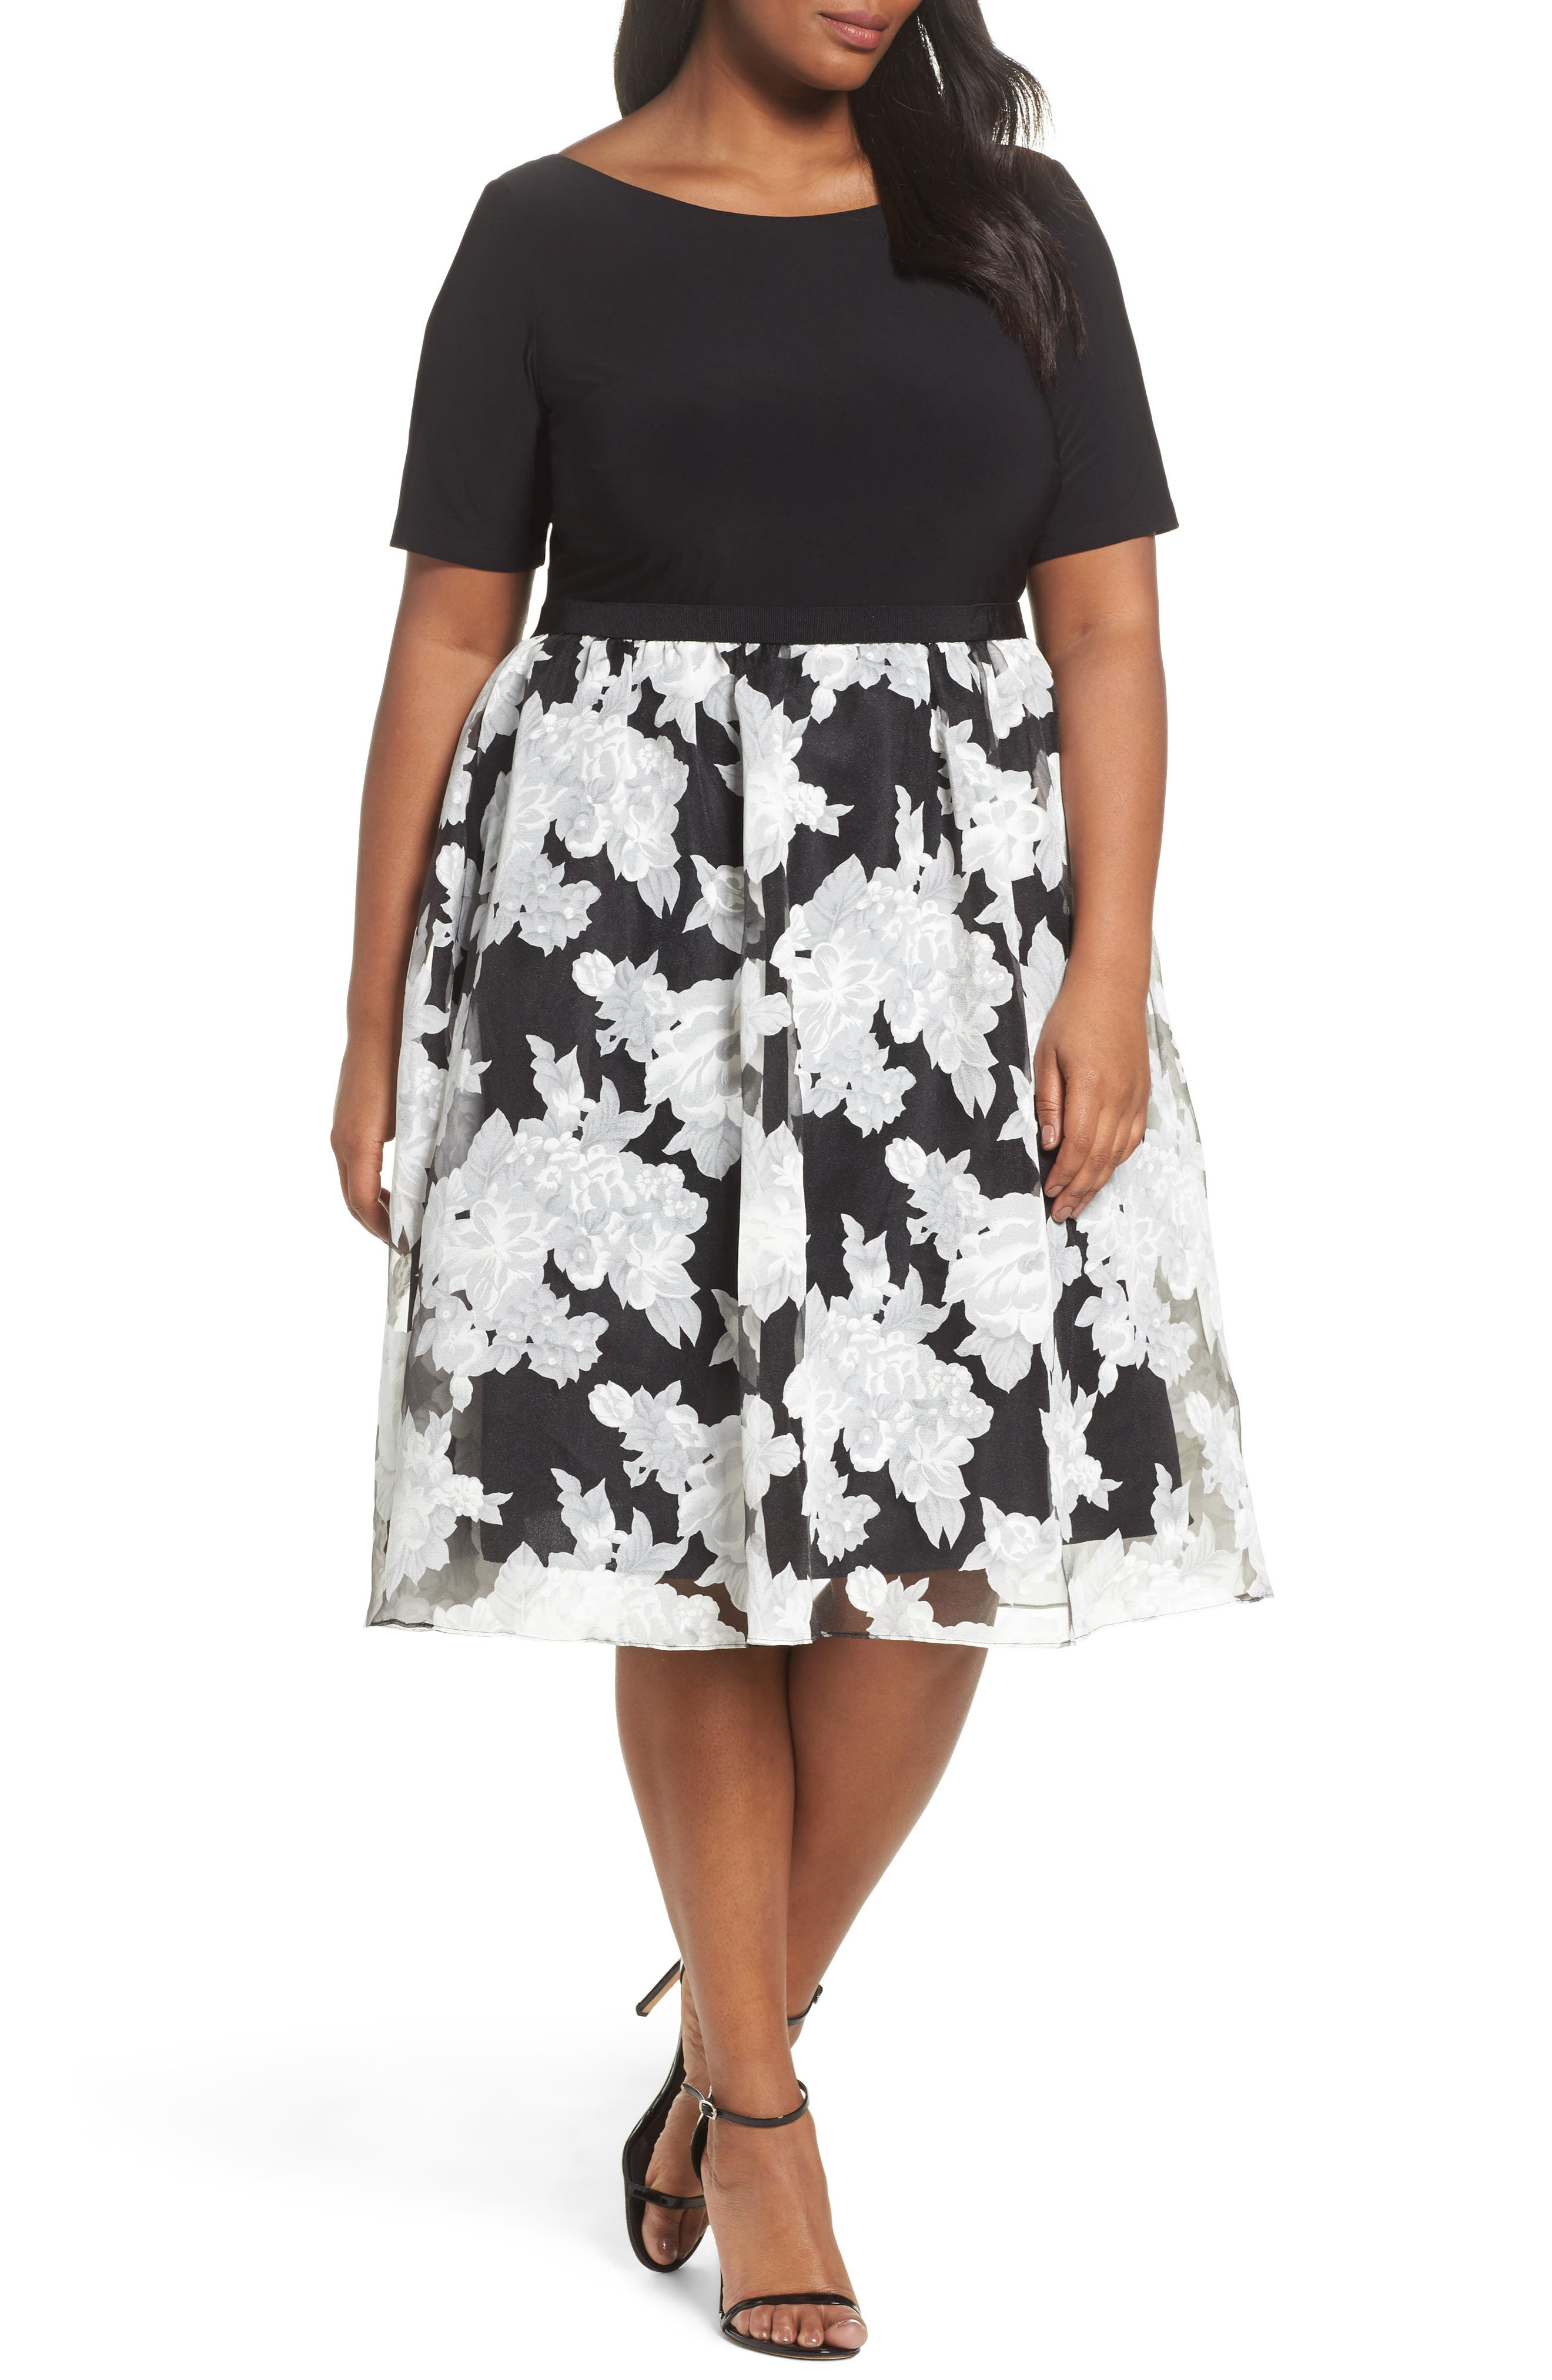 Alternate Image 1 Selected - Adrianna Papell Print Organza Fit & Flare Dress (Plus Size)